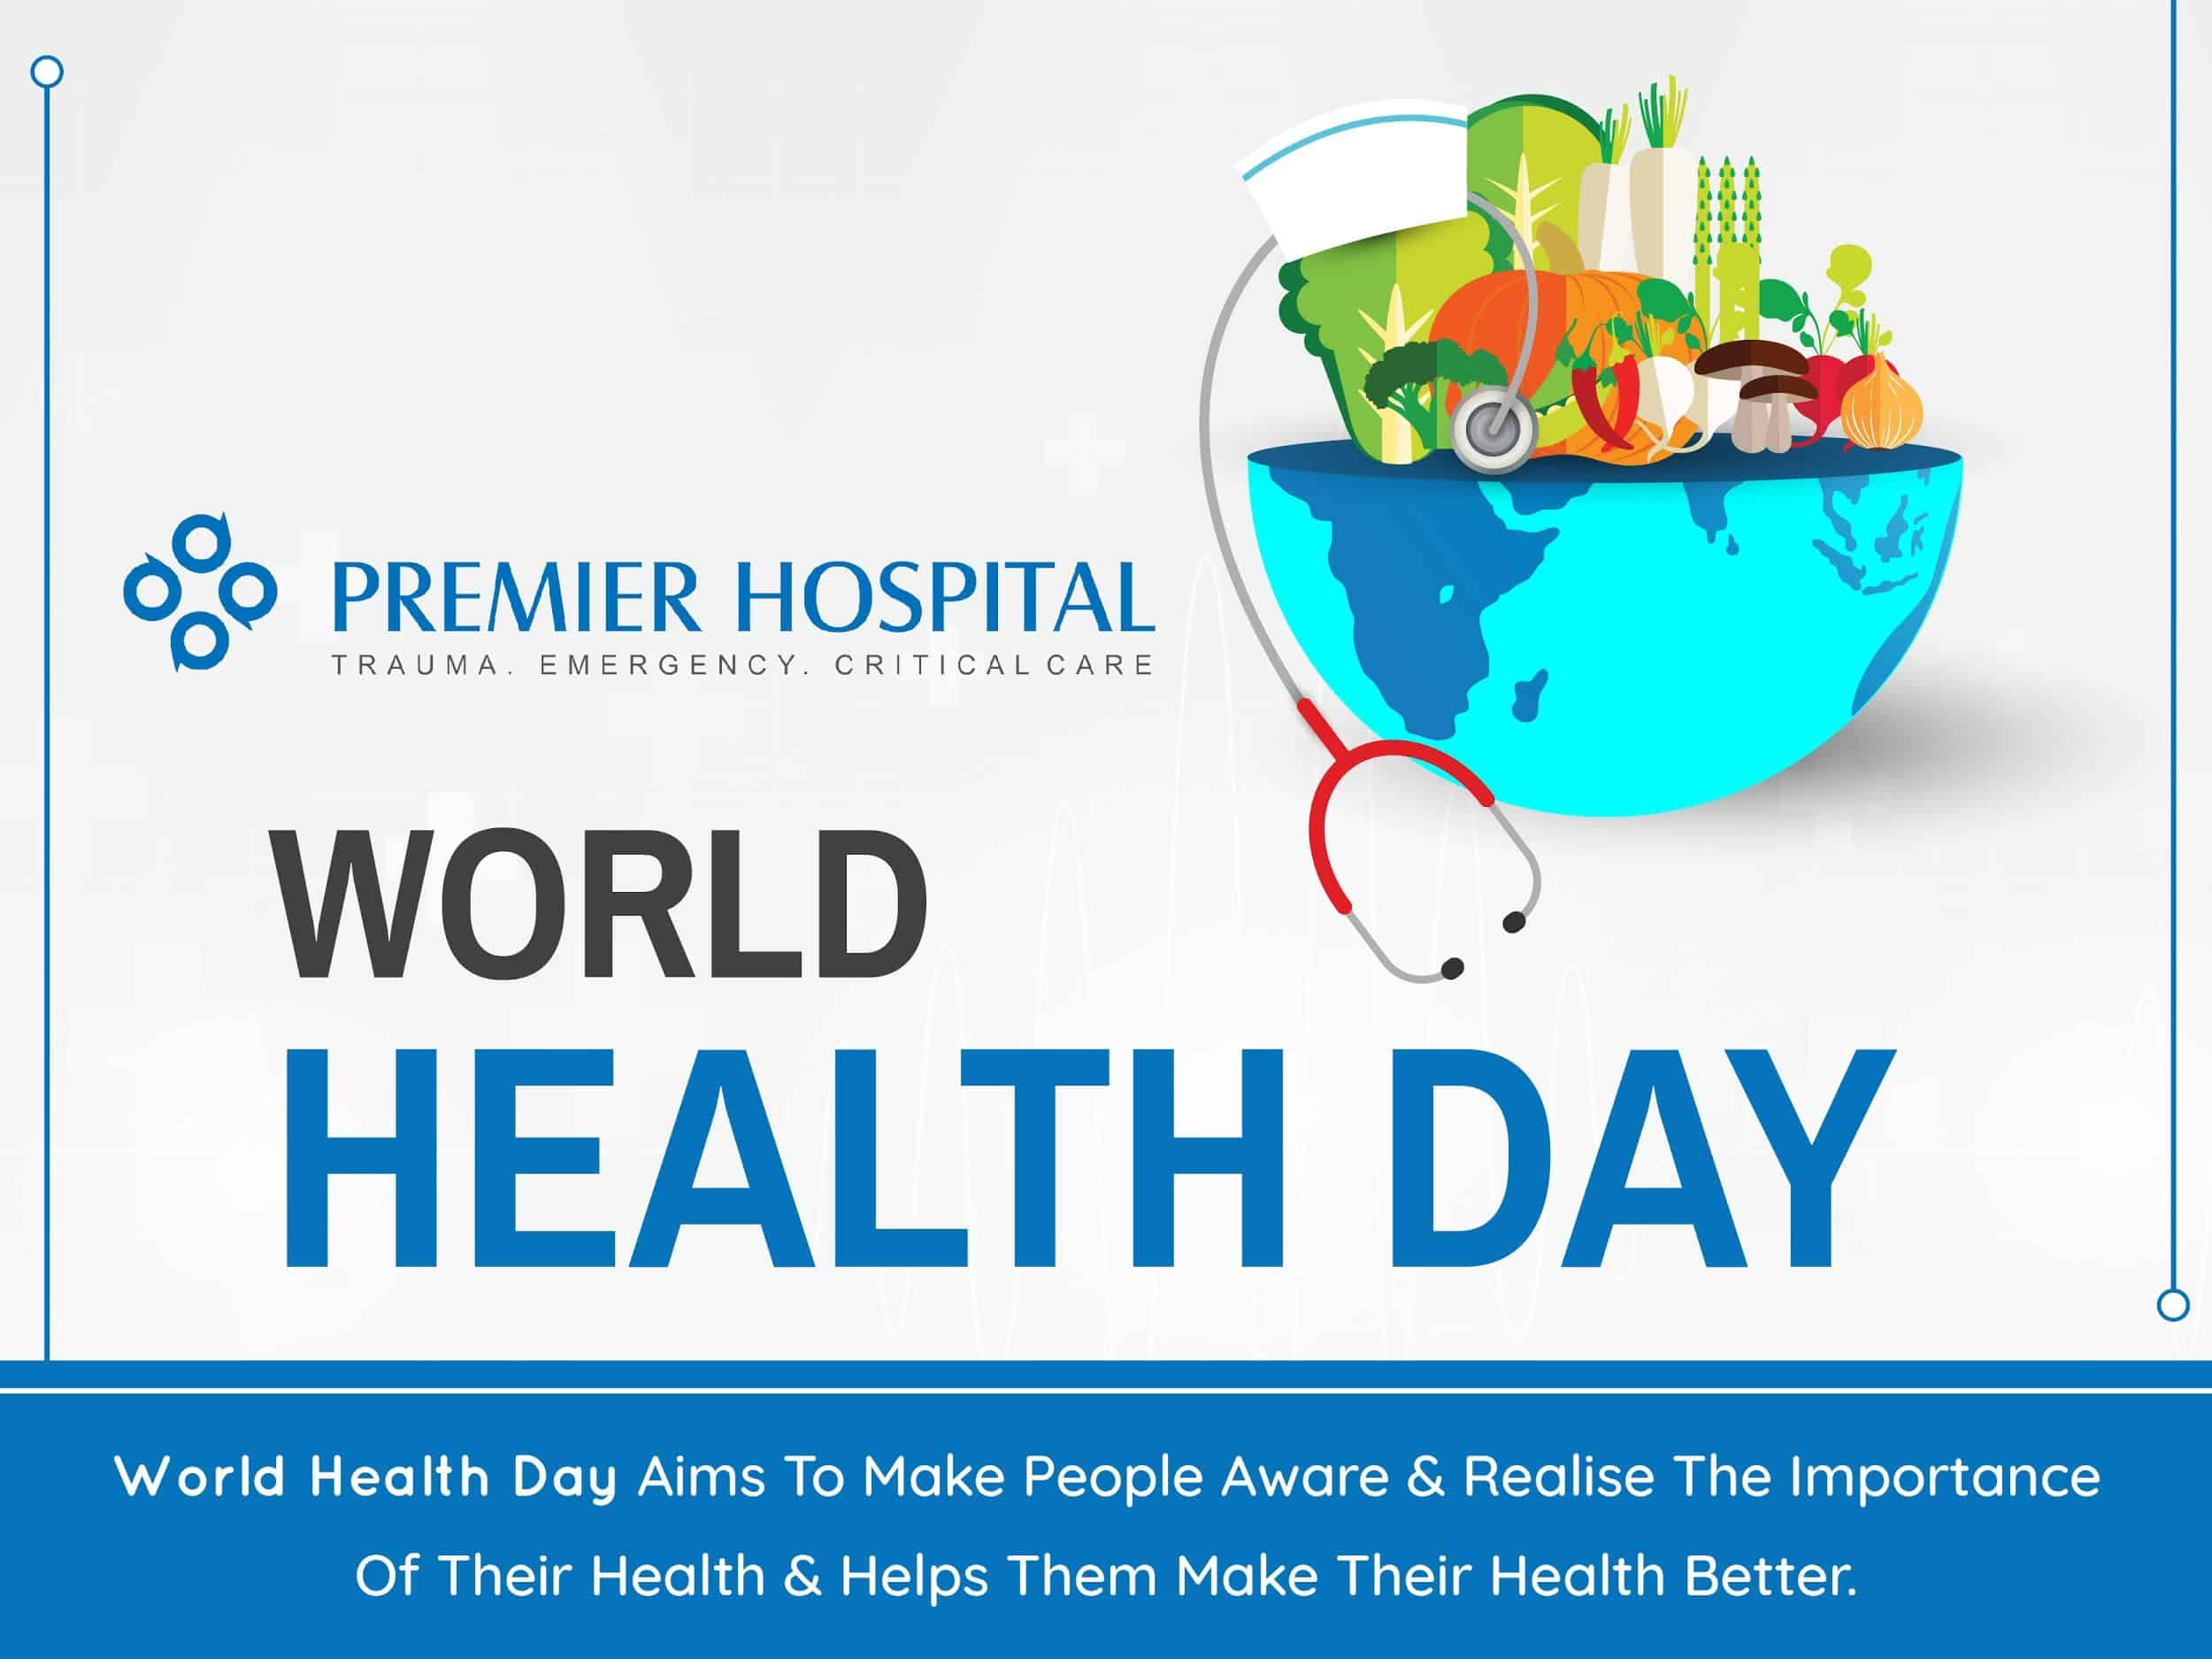 World Health Day - Why We Celebrate it